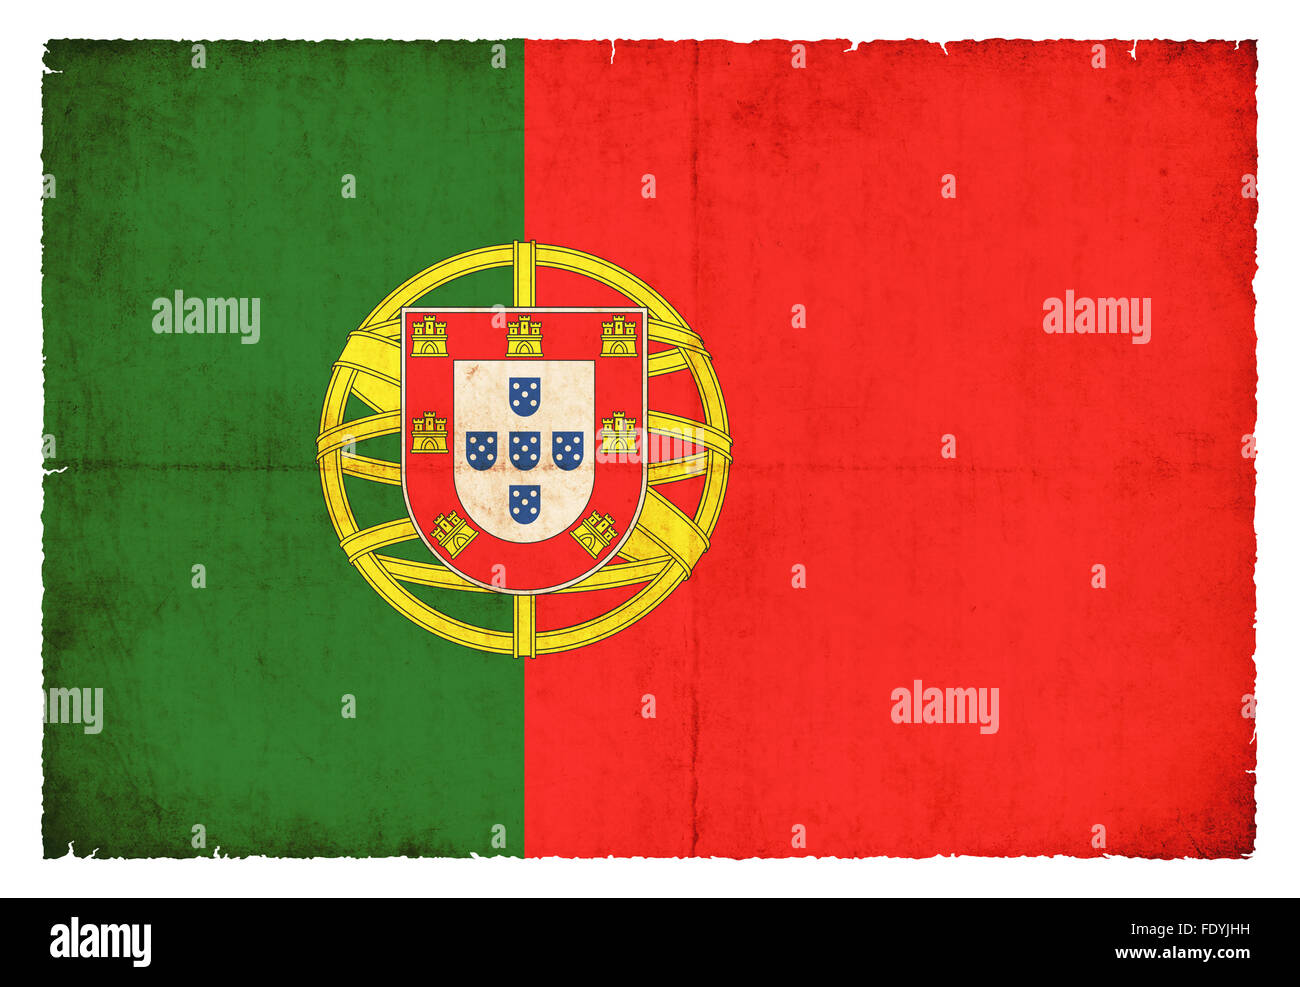 National Flag of Portugal created in grunge style - Stock Image